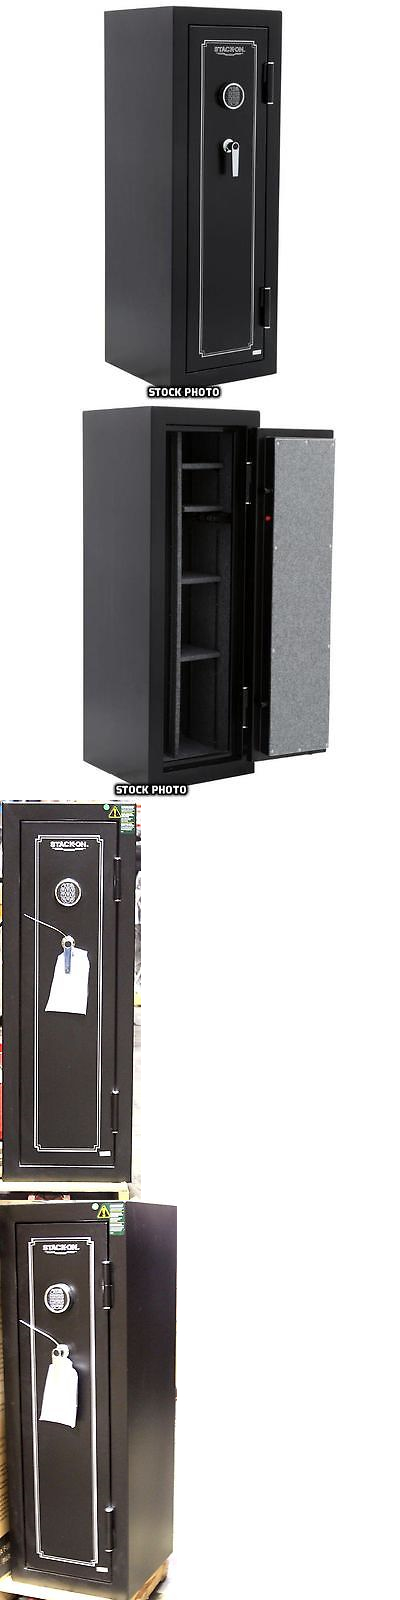 Cabinets And Safes 177877: Stack On 14 Gun Fire Resistant Security Safe  With Electronic